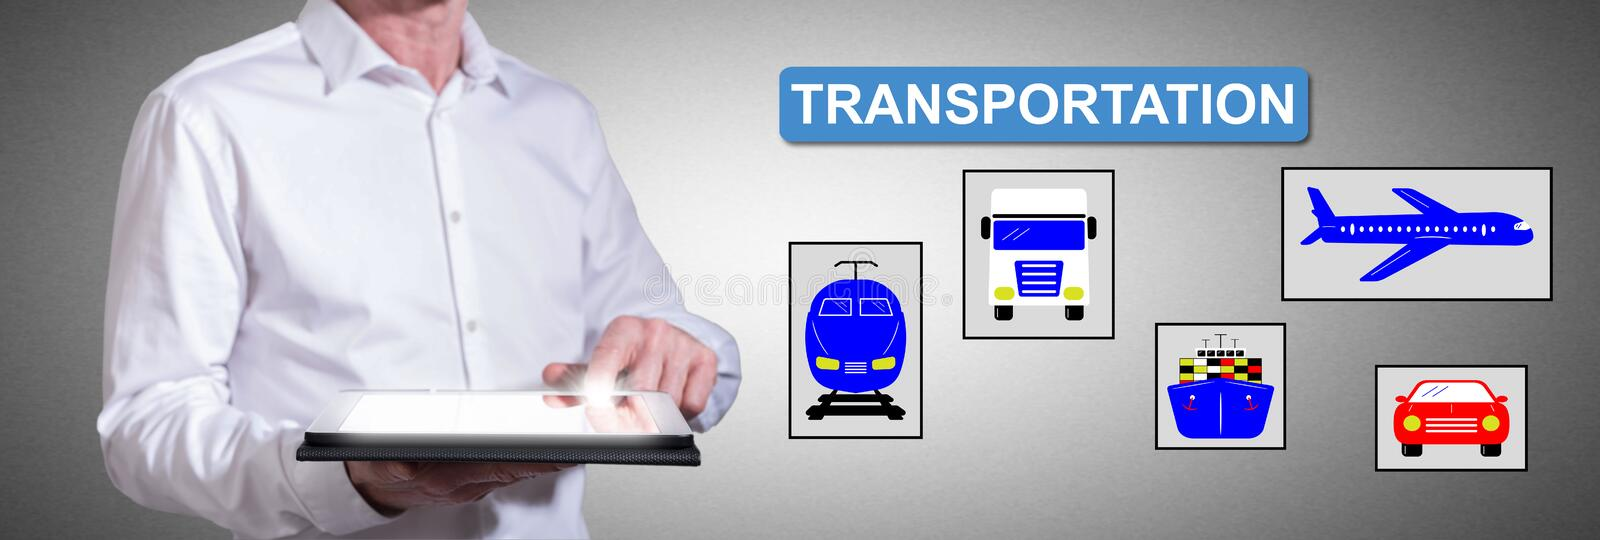 Transportation concept with man using a tablet stock photos